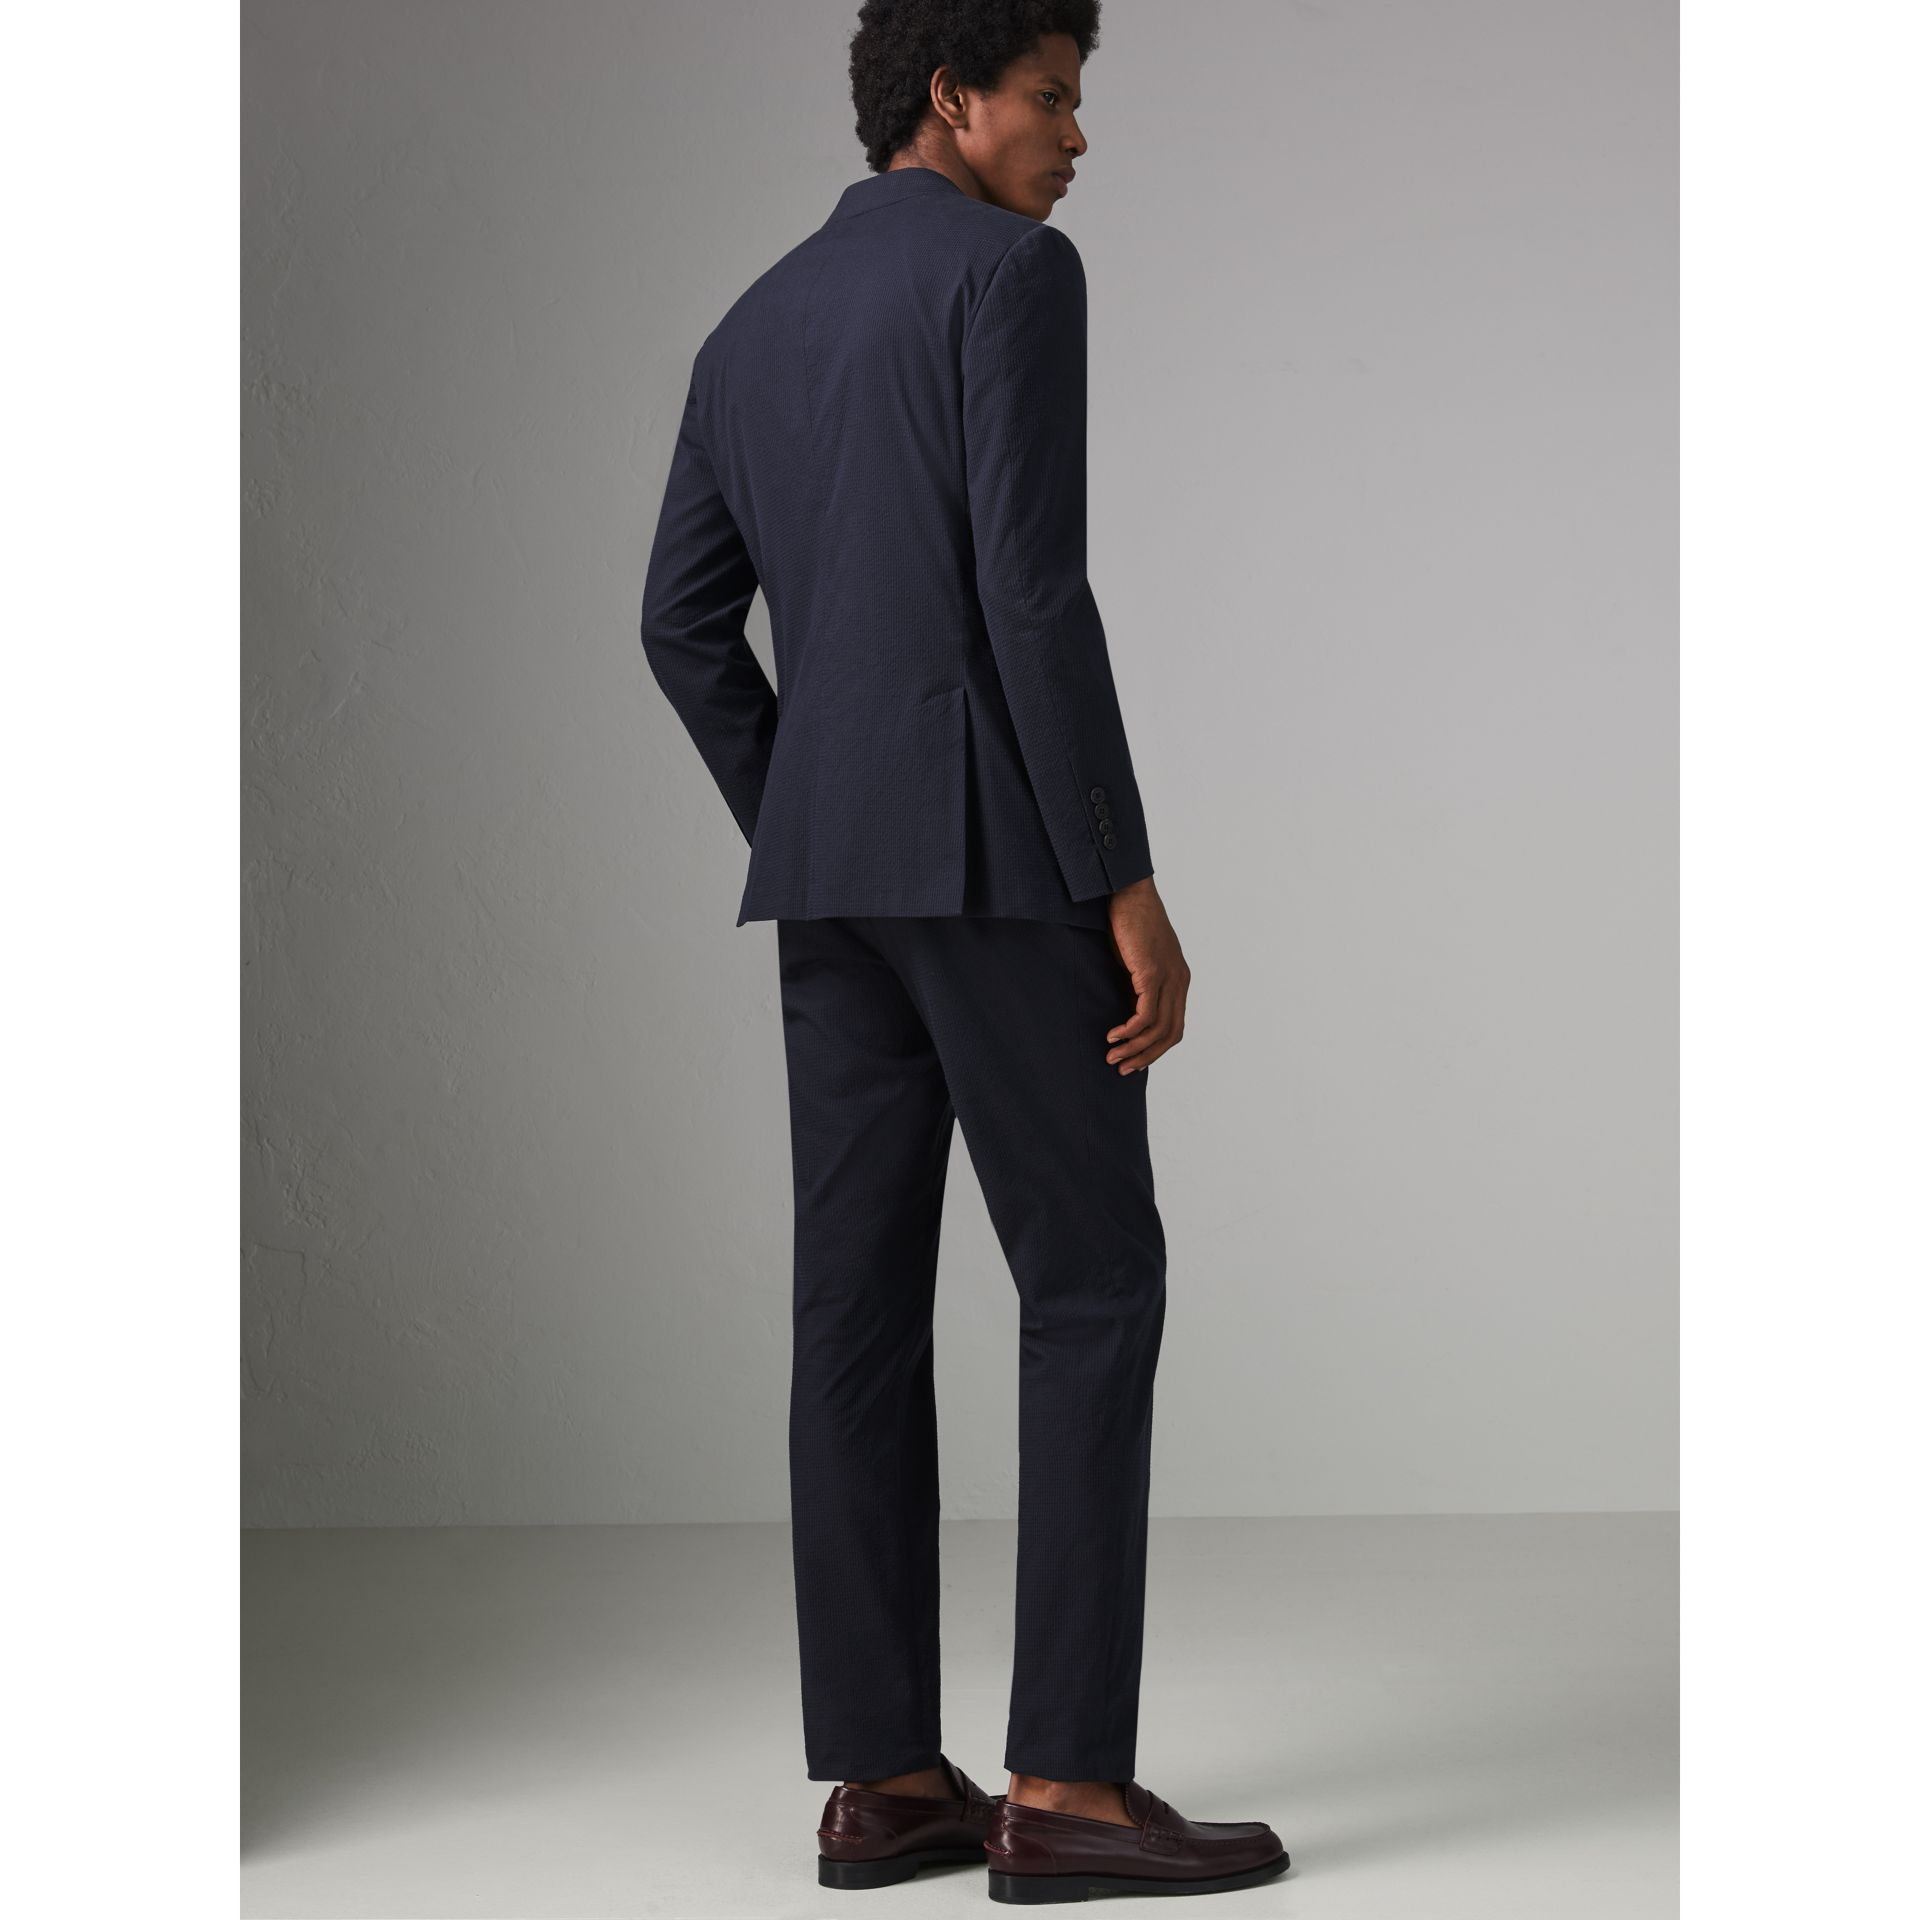 Soho Fit Cotton Silk Seersucker Suit in Navy - Men | Burberry - gallery image 2